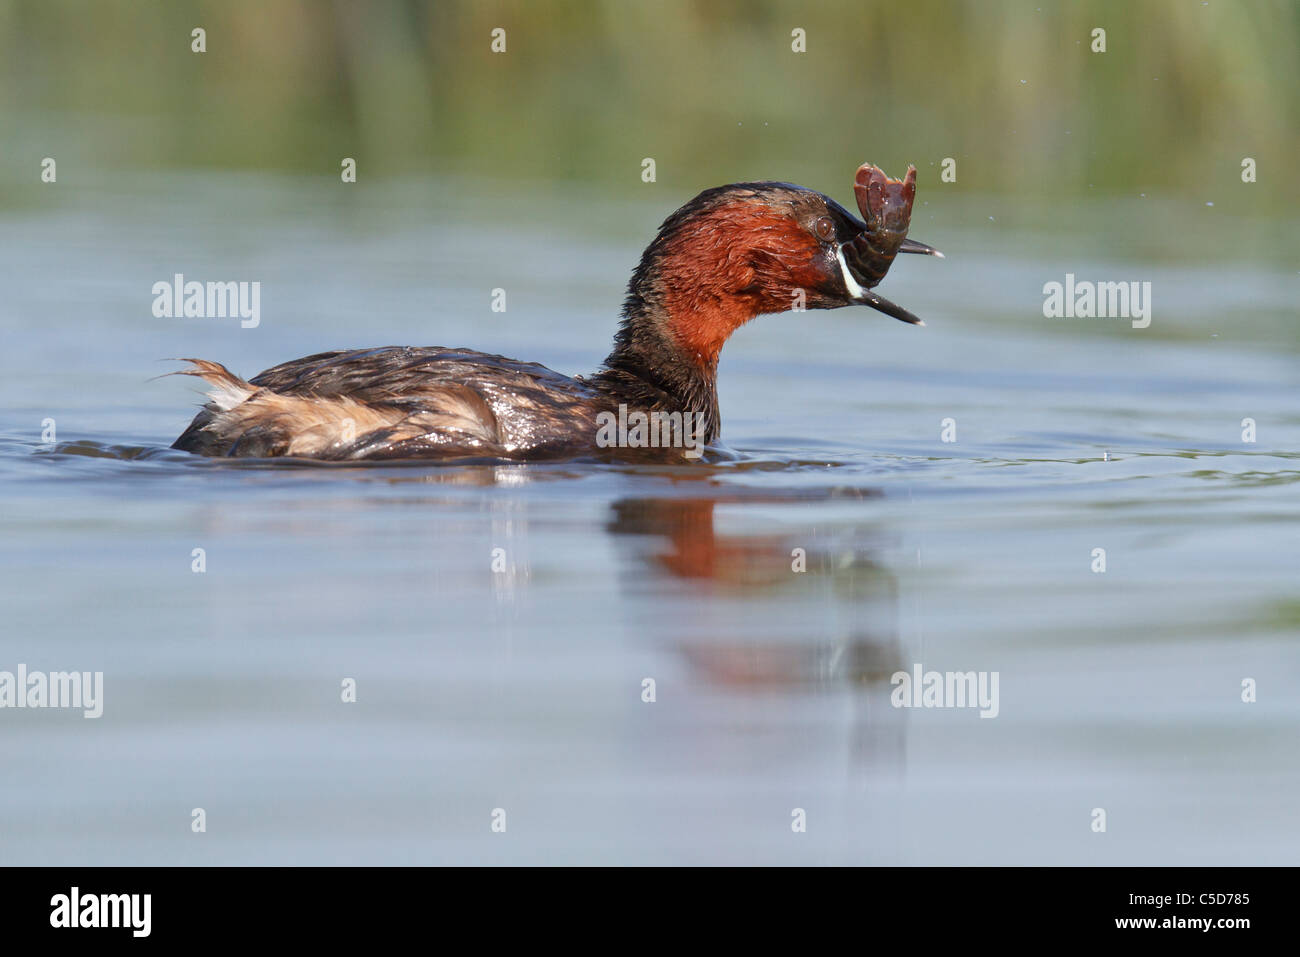 Little grebe (tachybaptus ruficollis) adult eating. Spain. - Stock Image